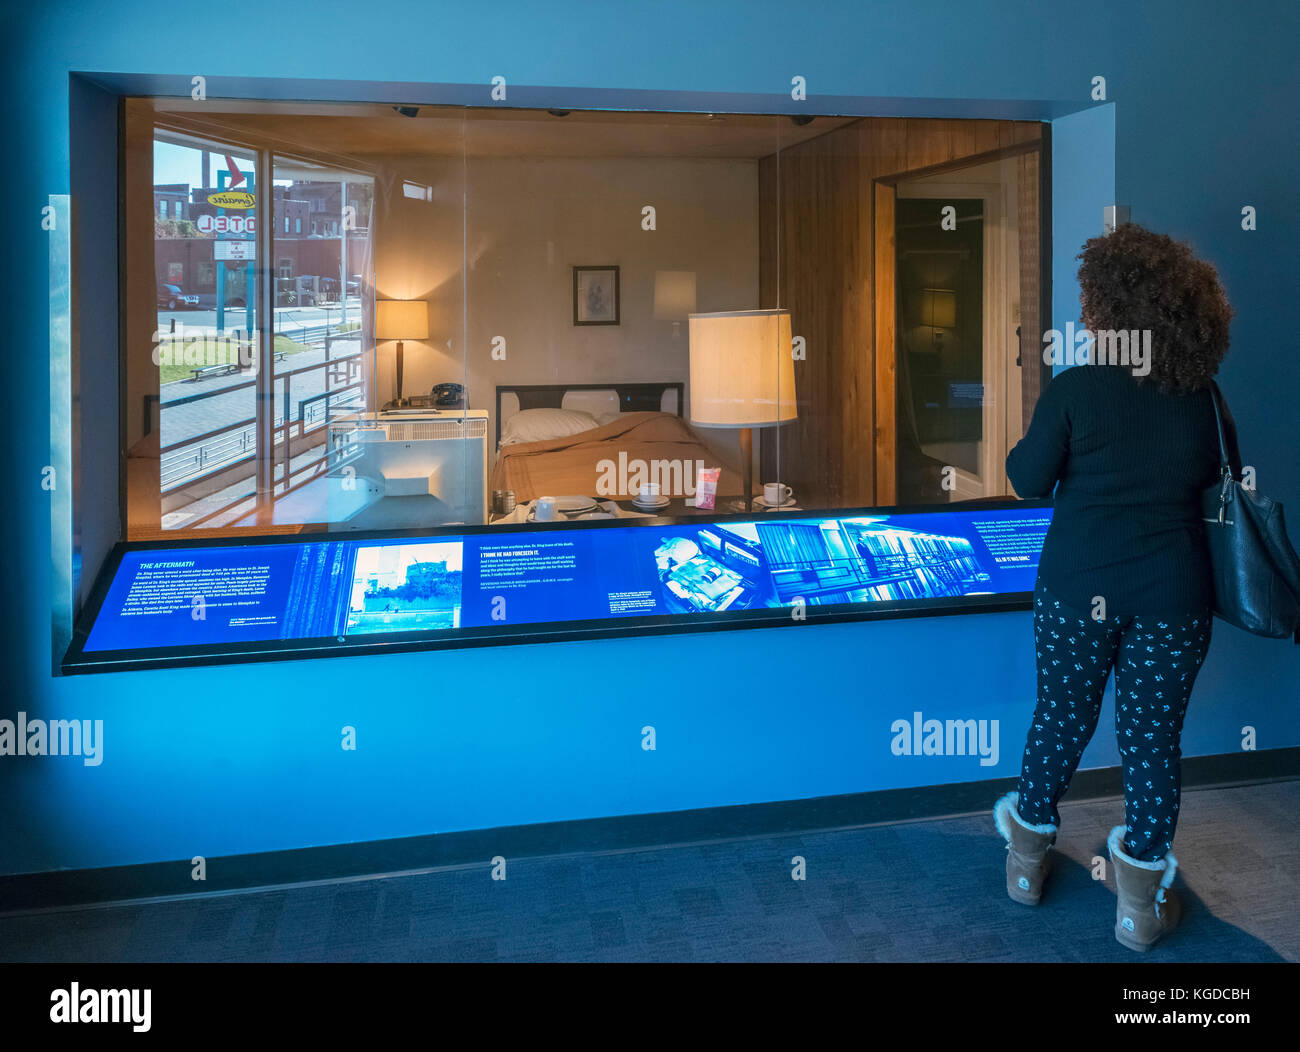 National Civil Rights Museum, Memphis. Room at Lorraine Motel in which Martin Luther King Jr was staying when shot In 1968, Memphis, Tennessee, USA Stock Photo